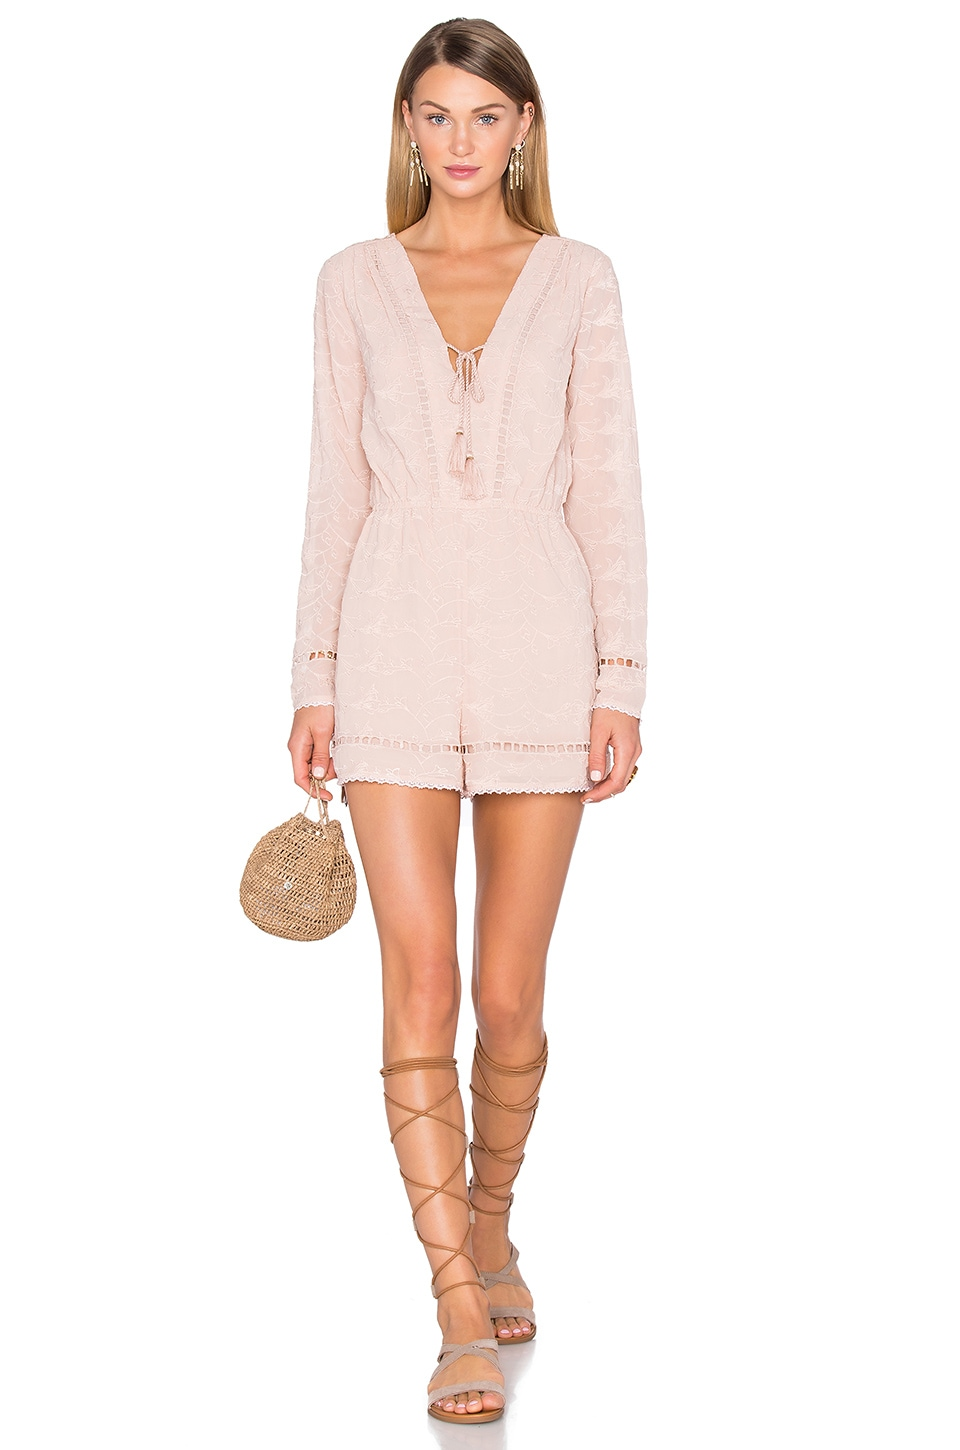 House of Harlow 1960 x REVOLVE Mila Long Sleeve Romper in Taupe